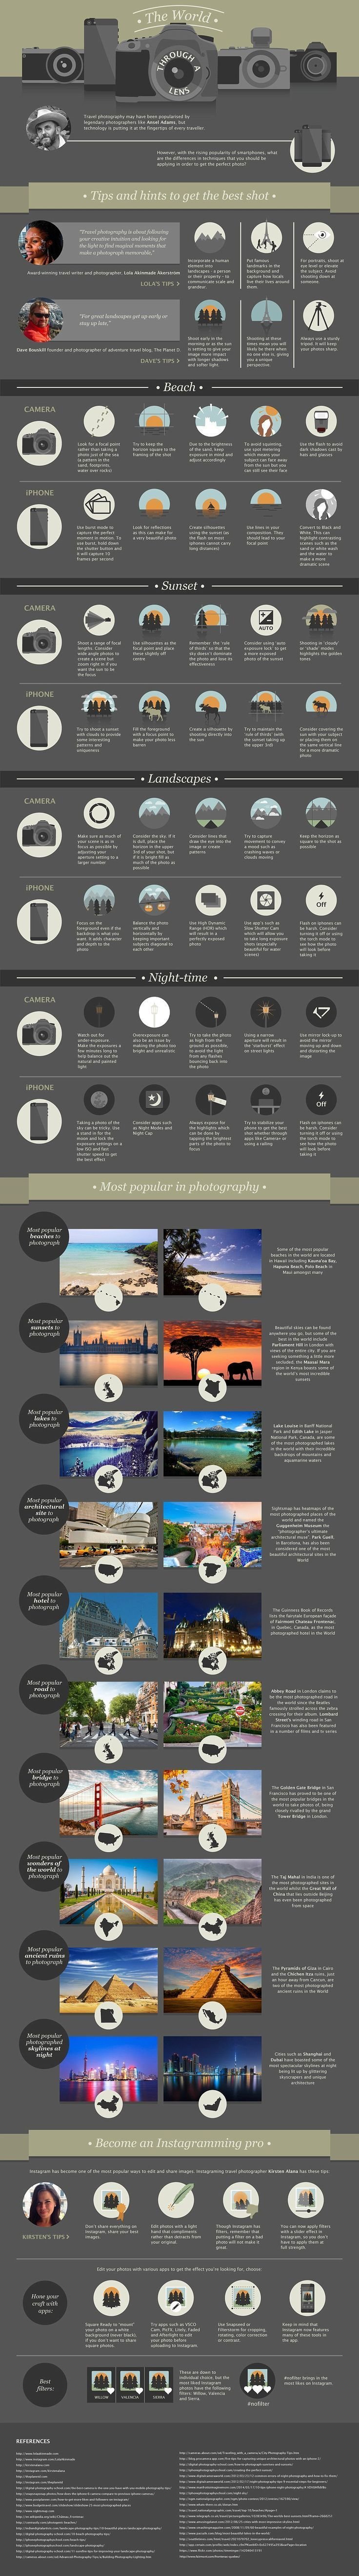 Experts reveal their ultimate travel photography tips – Scott Howard